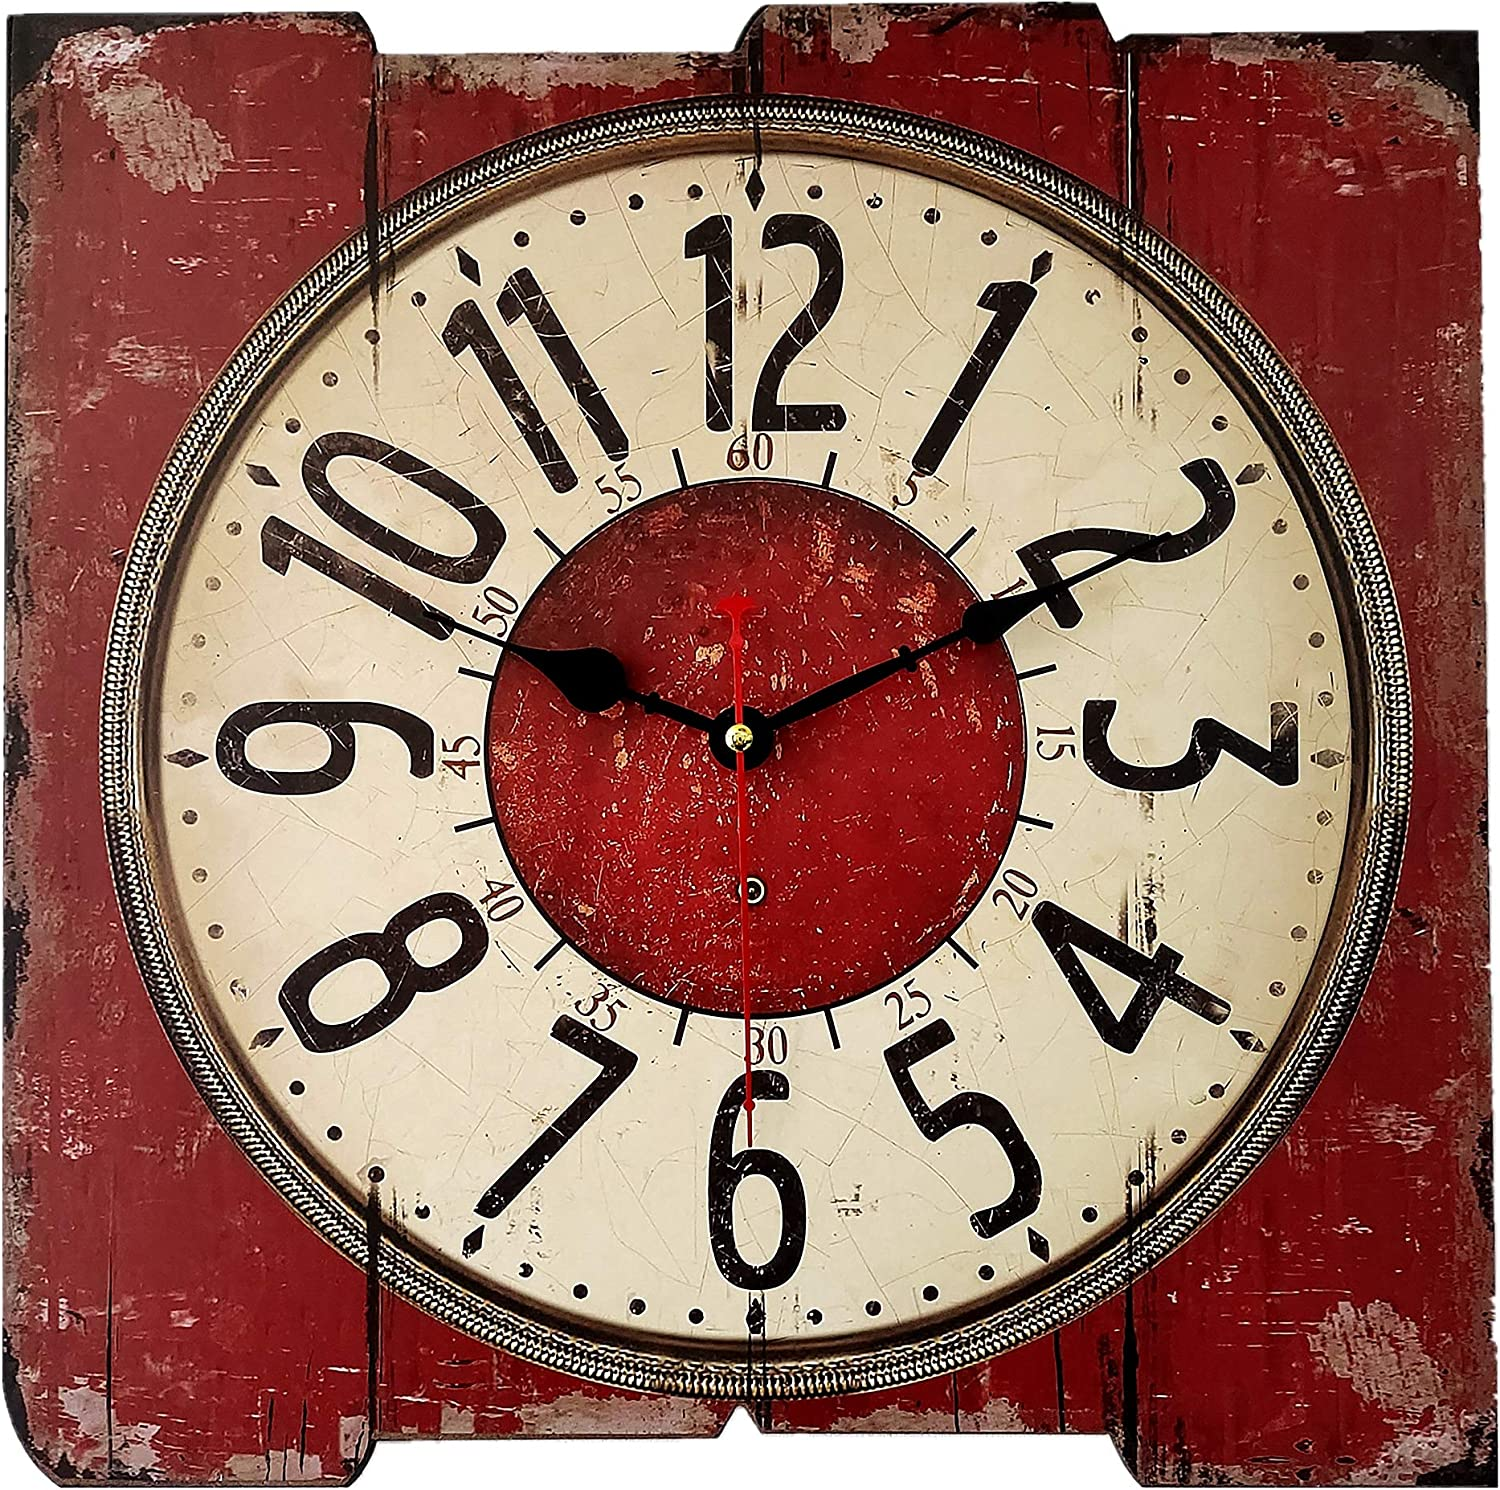 16inch Red Retro Square Wall Clock, Large Vintage Paris Decorative Clocks for Kitchen, Living Room or Office